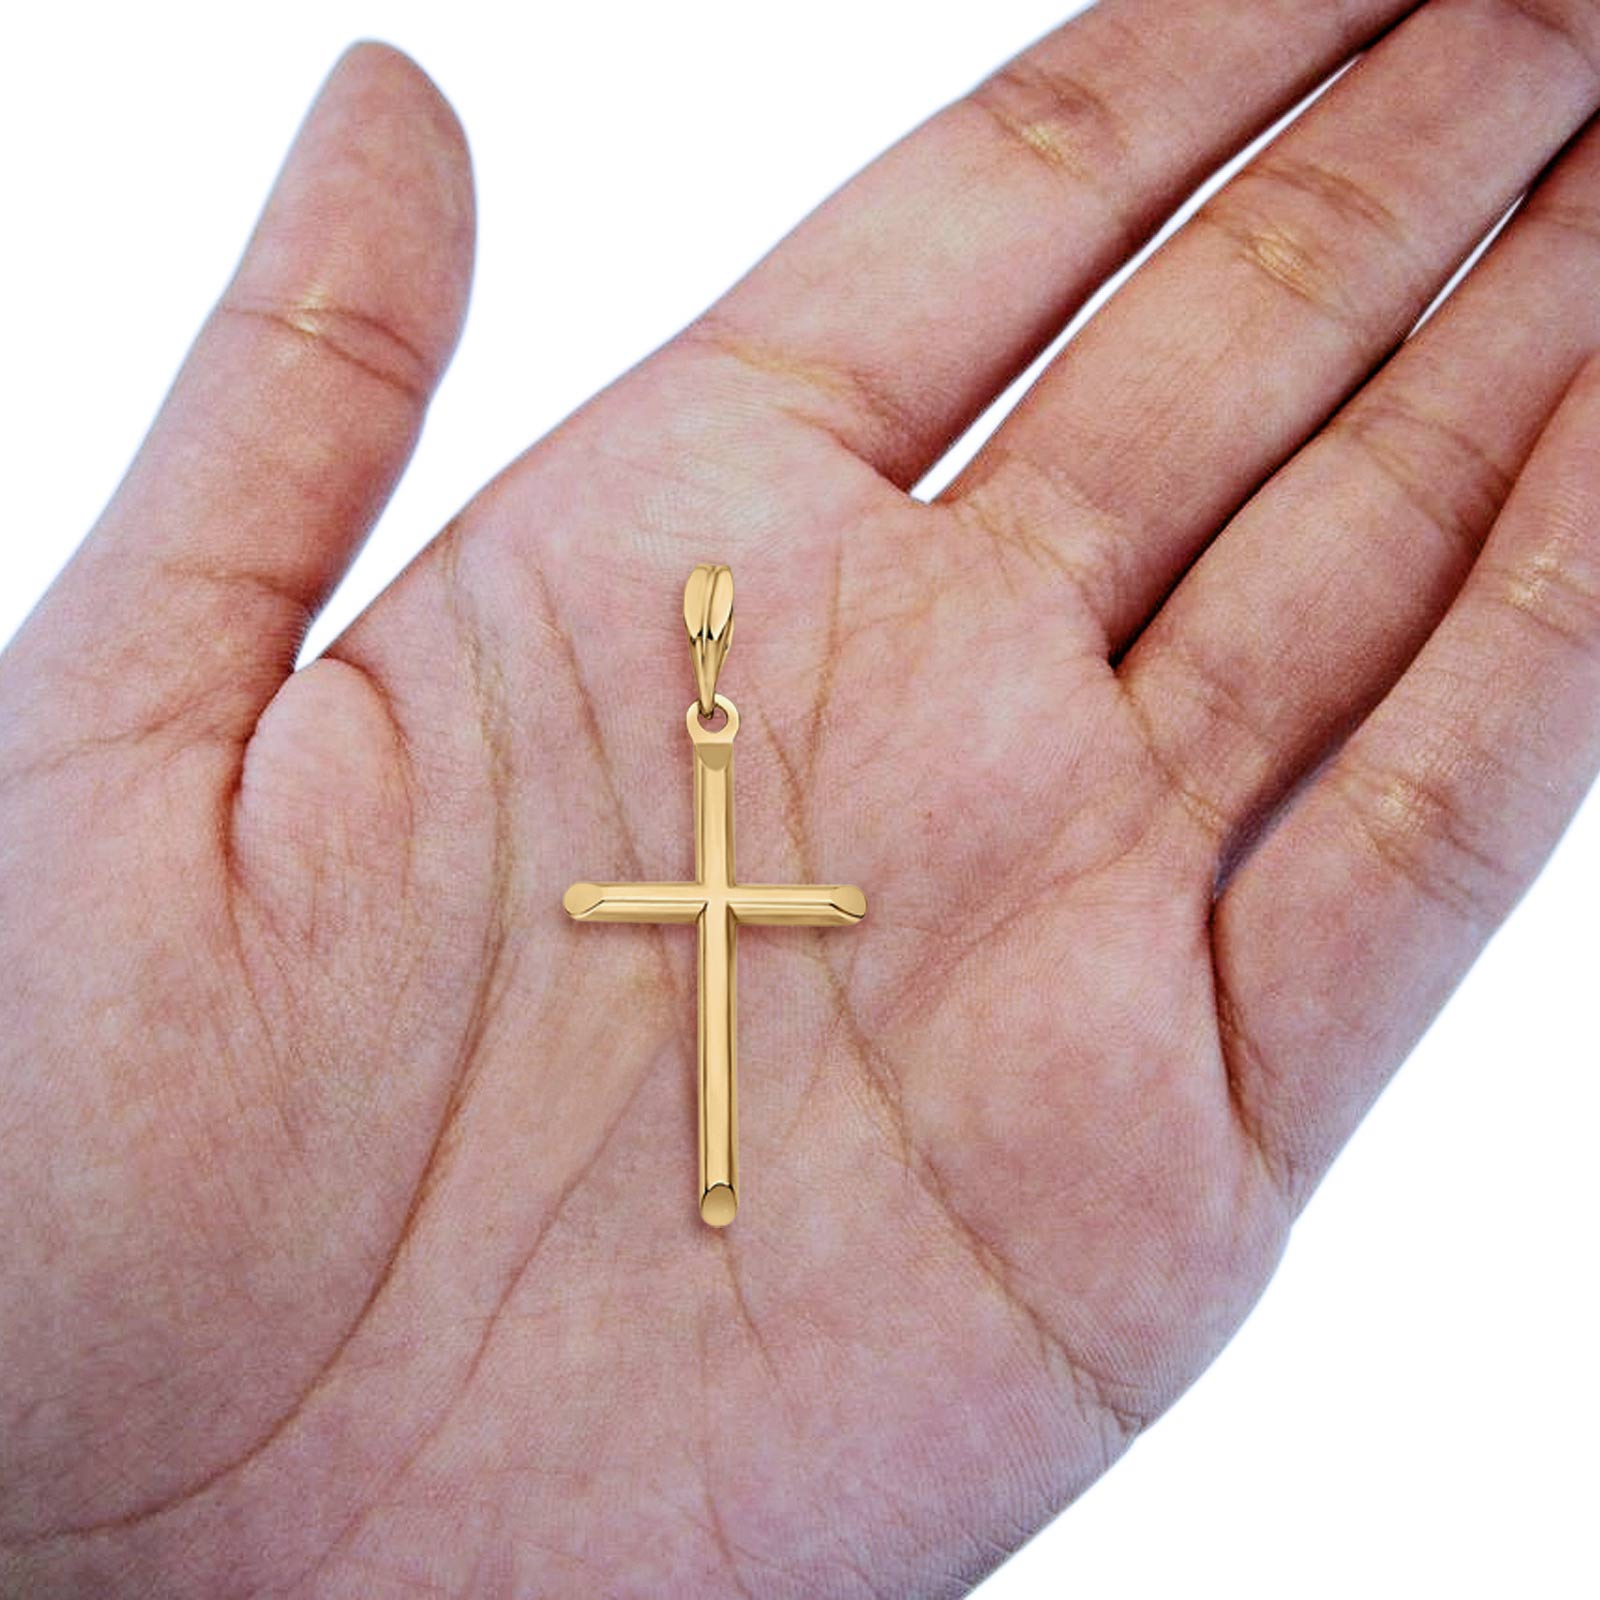 Real Yellow Gold Religious Cross Charm Pendant 14K 27mmX17mm 0.7grams